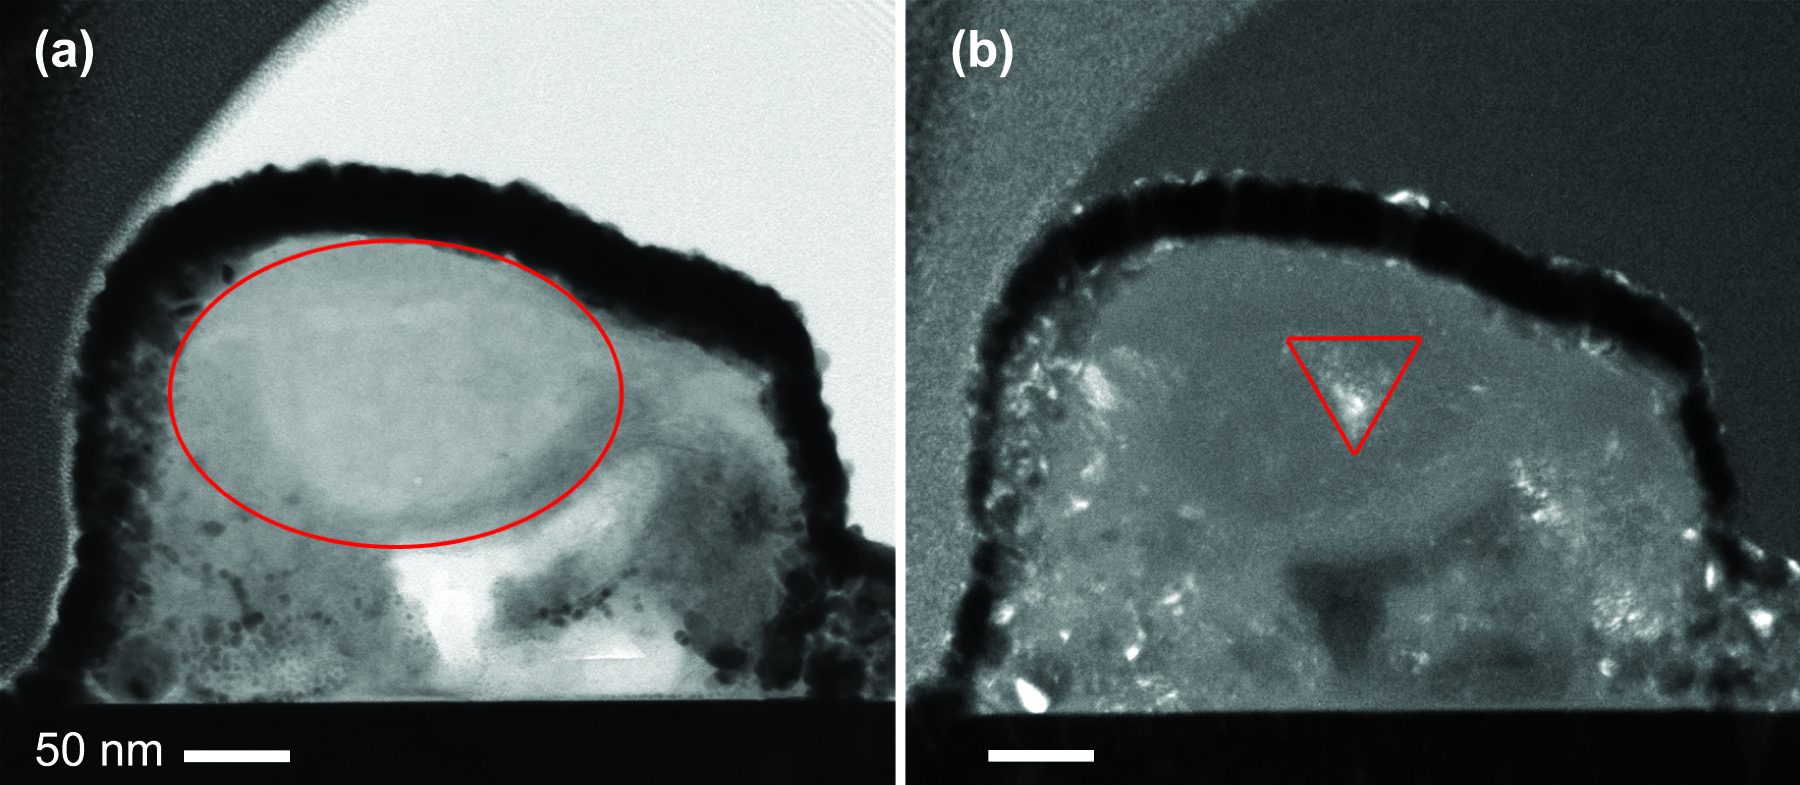 These transmission electron microscope (TEM) images reveal that one interstellar grain consists of a small crystalline enstatite core within a non-crystalline (amorphous) silicate of similar elemental composition. The 'bright field' TEM image on the left shows density contrast, where the thick dark rind surrounding the interstellar grain (circled in red) is a protective platinum strap used for sample preparation. In the 'dark field' TEM image on the right, crystalline materials appear bright and amorphous materials are dark. The scale bar is 50 nanometers in length, 50 billionths of a meter.